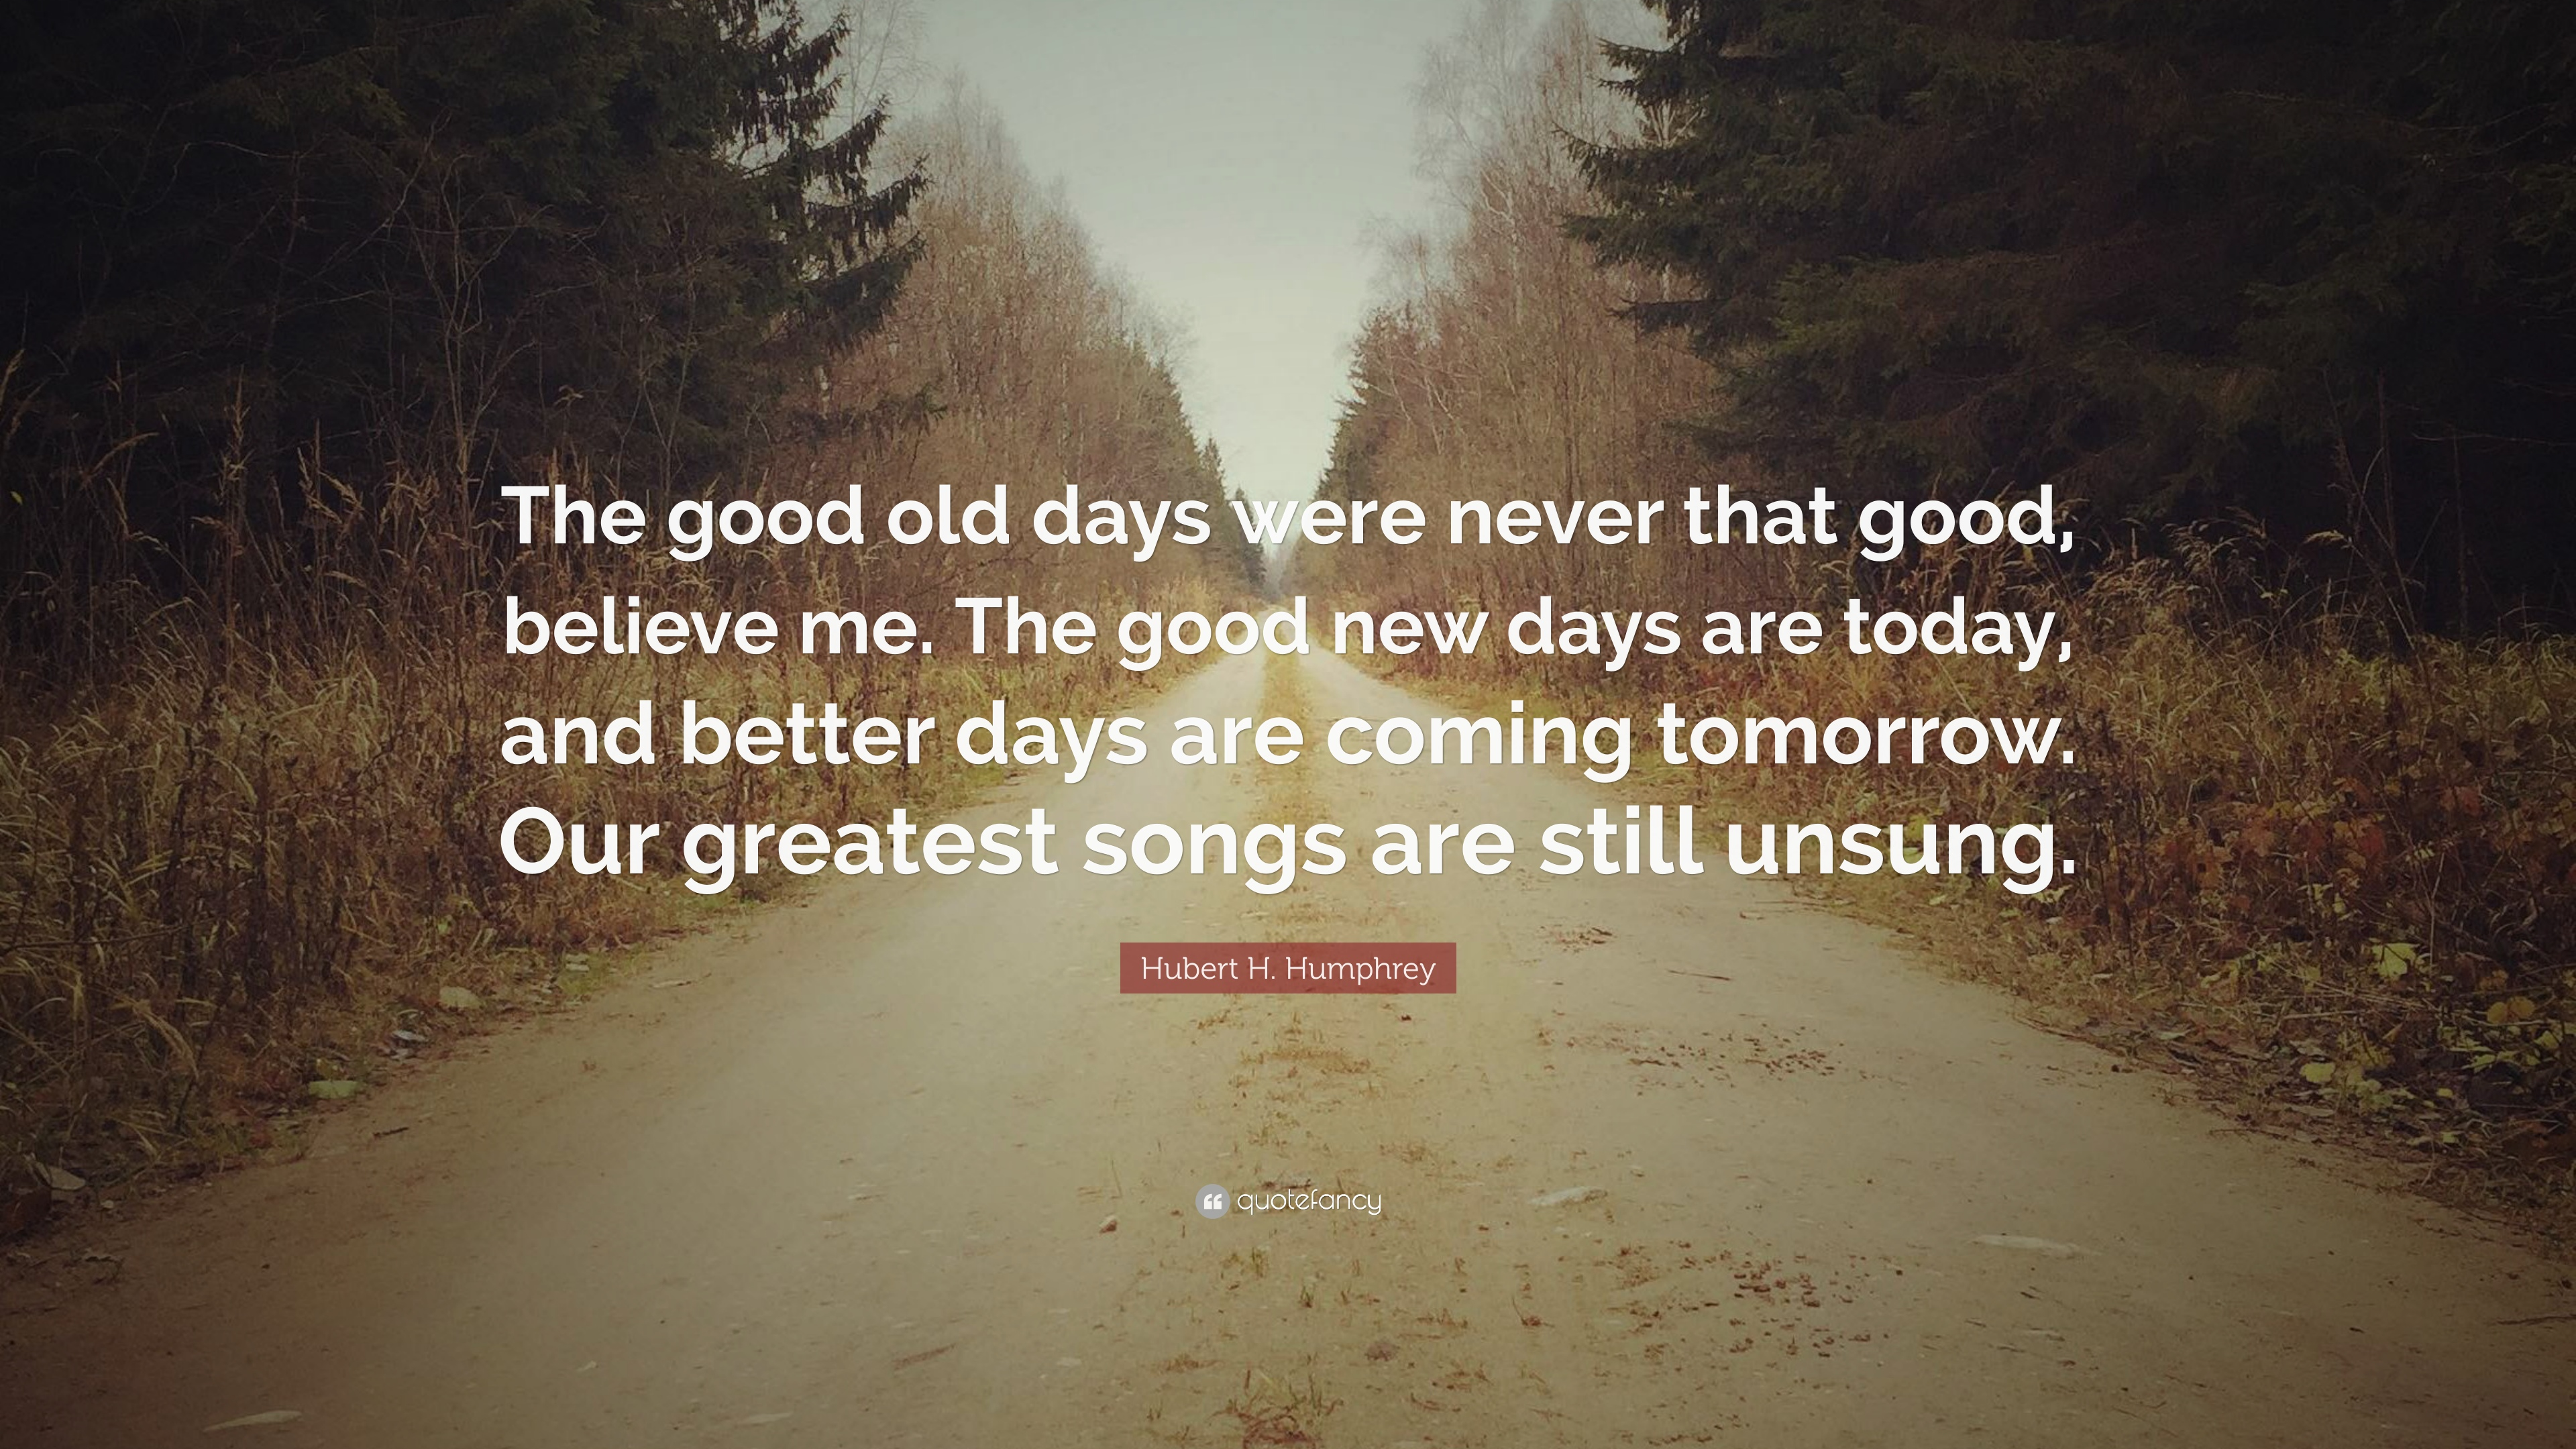 Hubert H Humphrey Quote The Good Old Days Were Never That Good